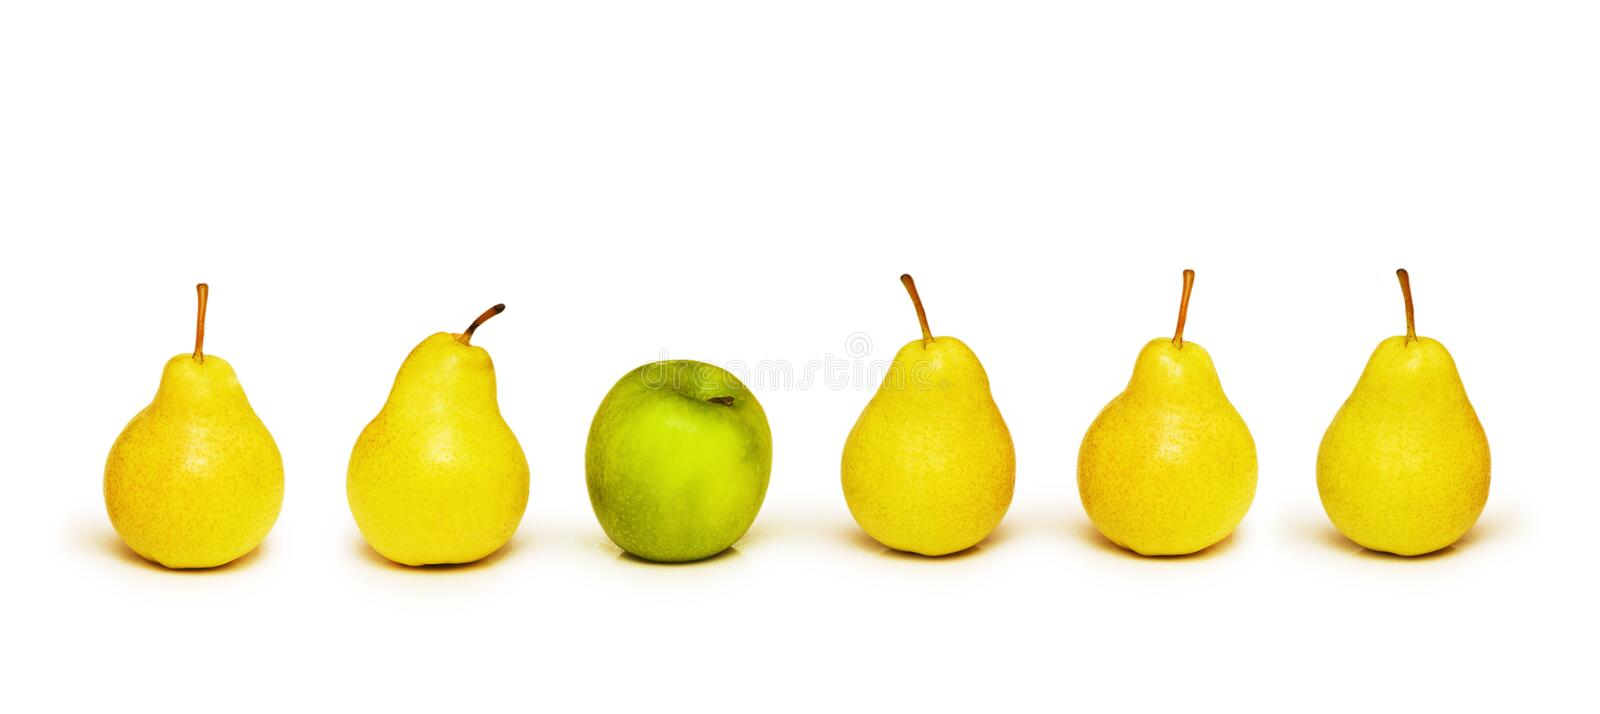 Download Stand out from crowd stock photo. Image of background - 8157772